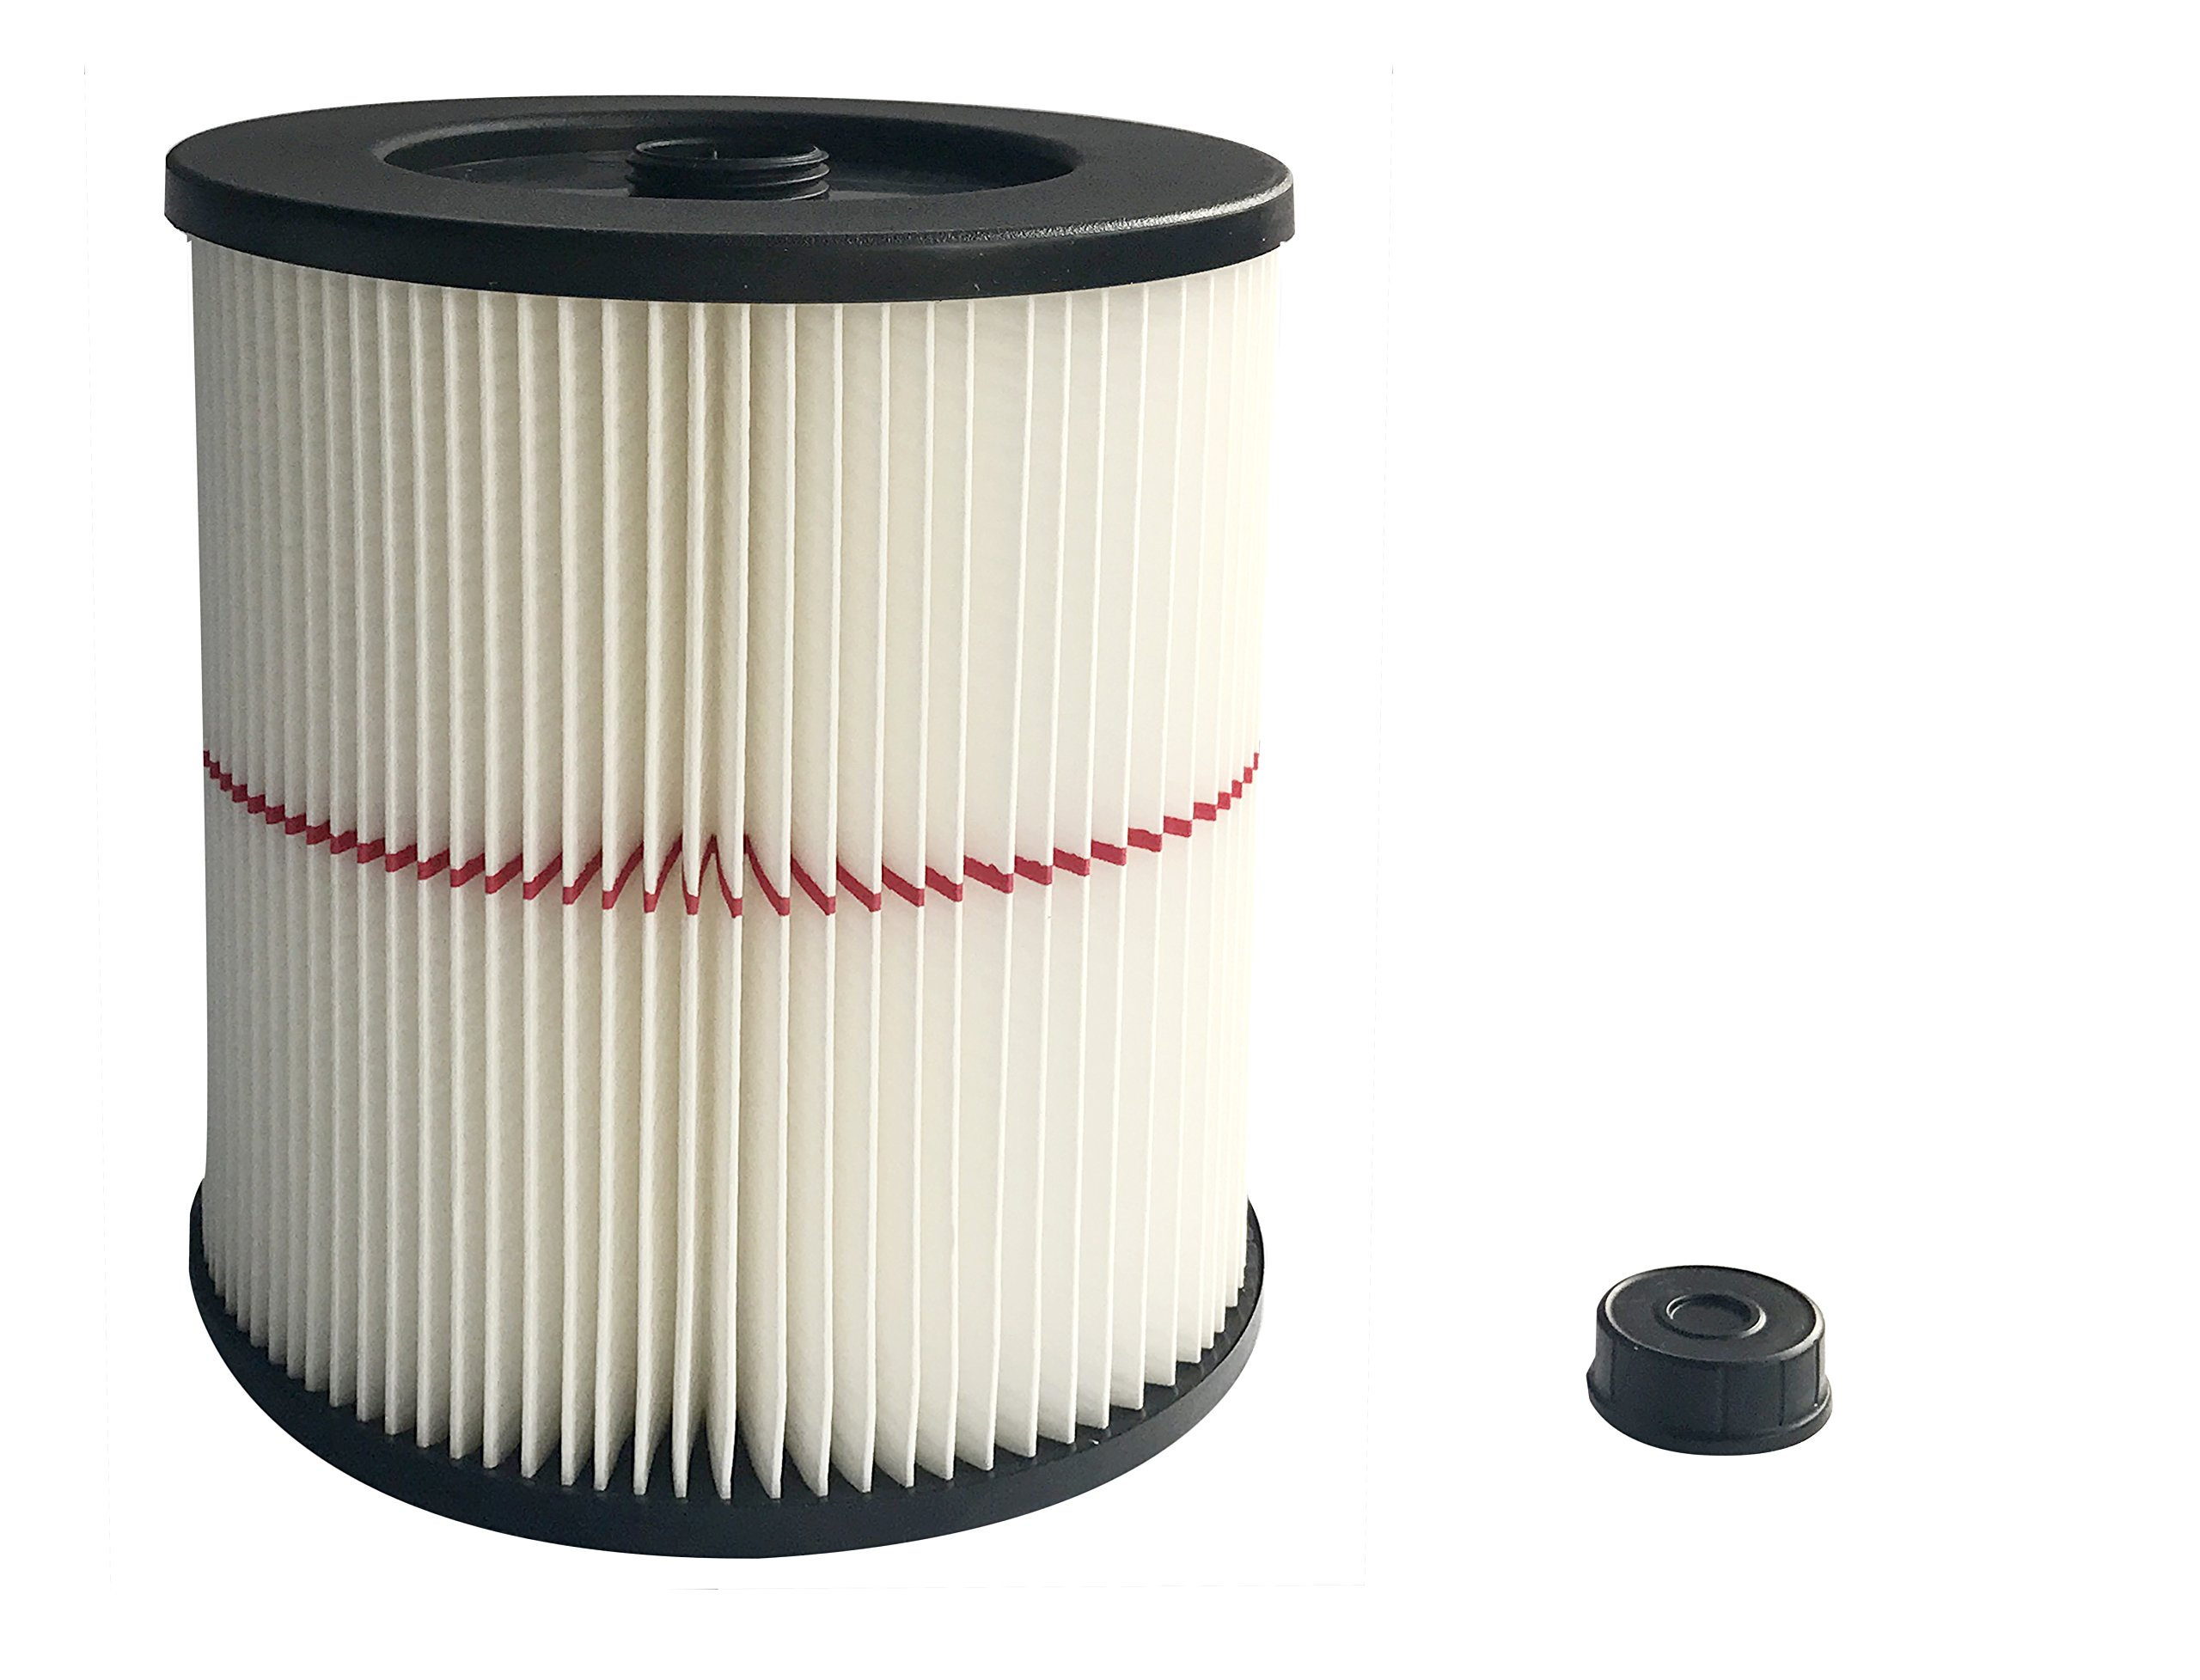 Super air .Xls Vacuum Cartridge Filter fits for Craftsman 17816 by Super air